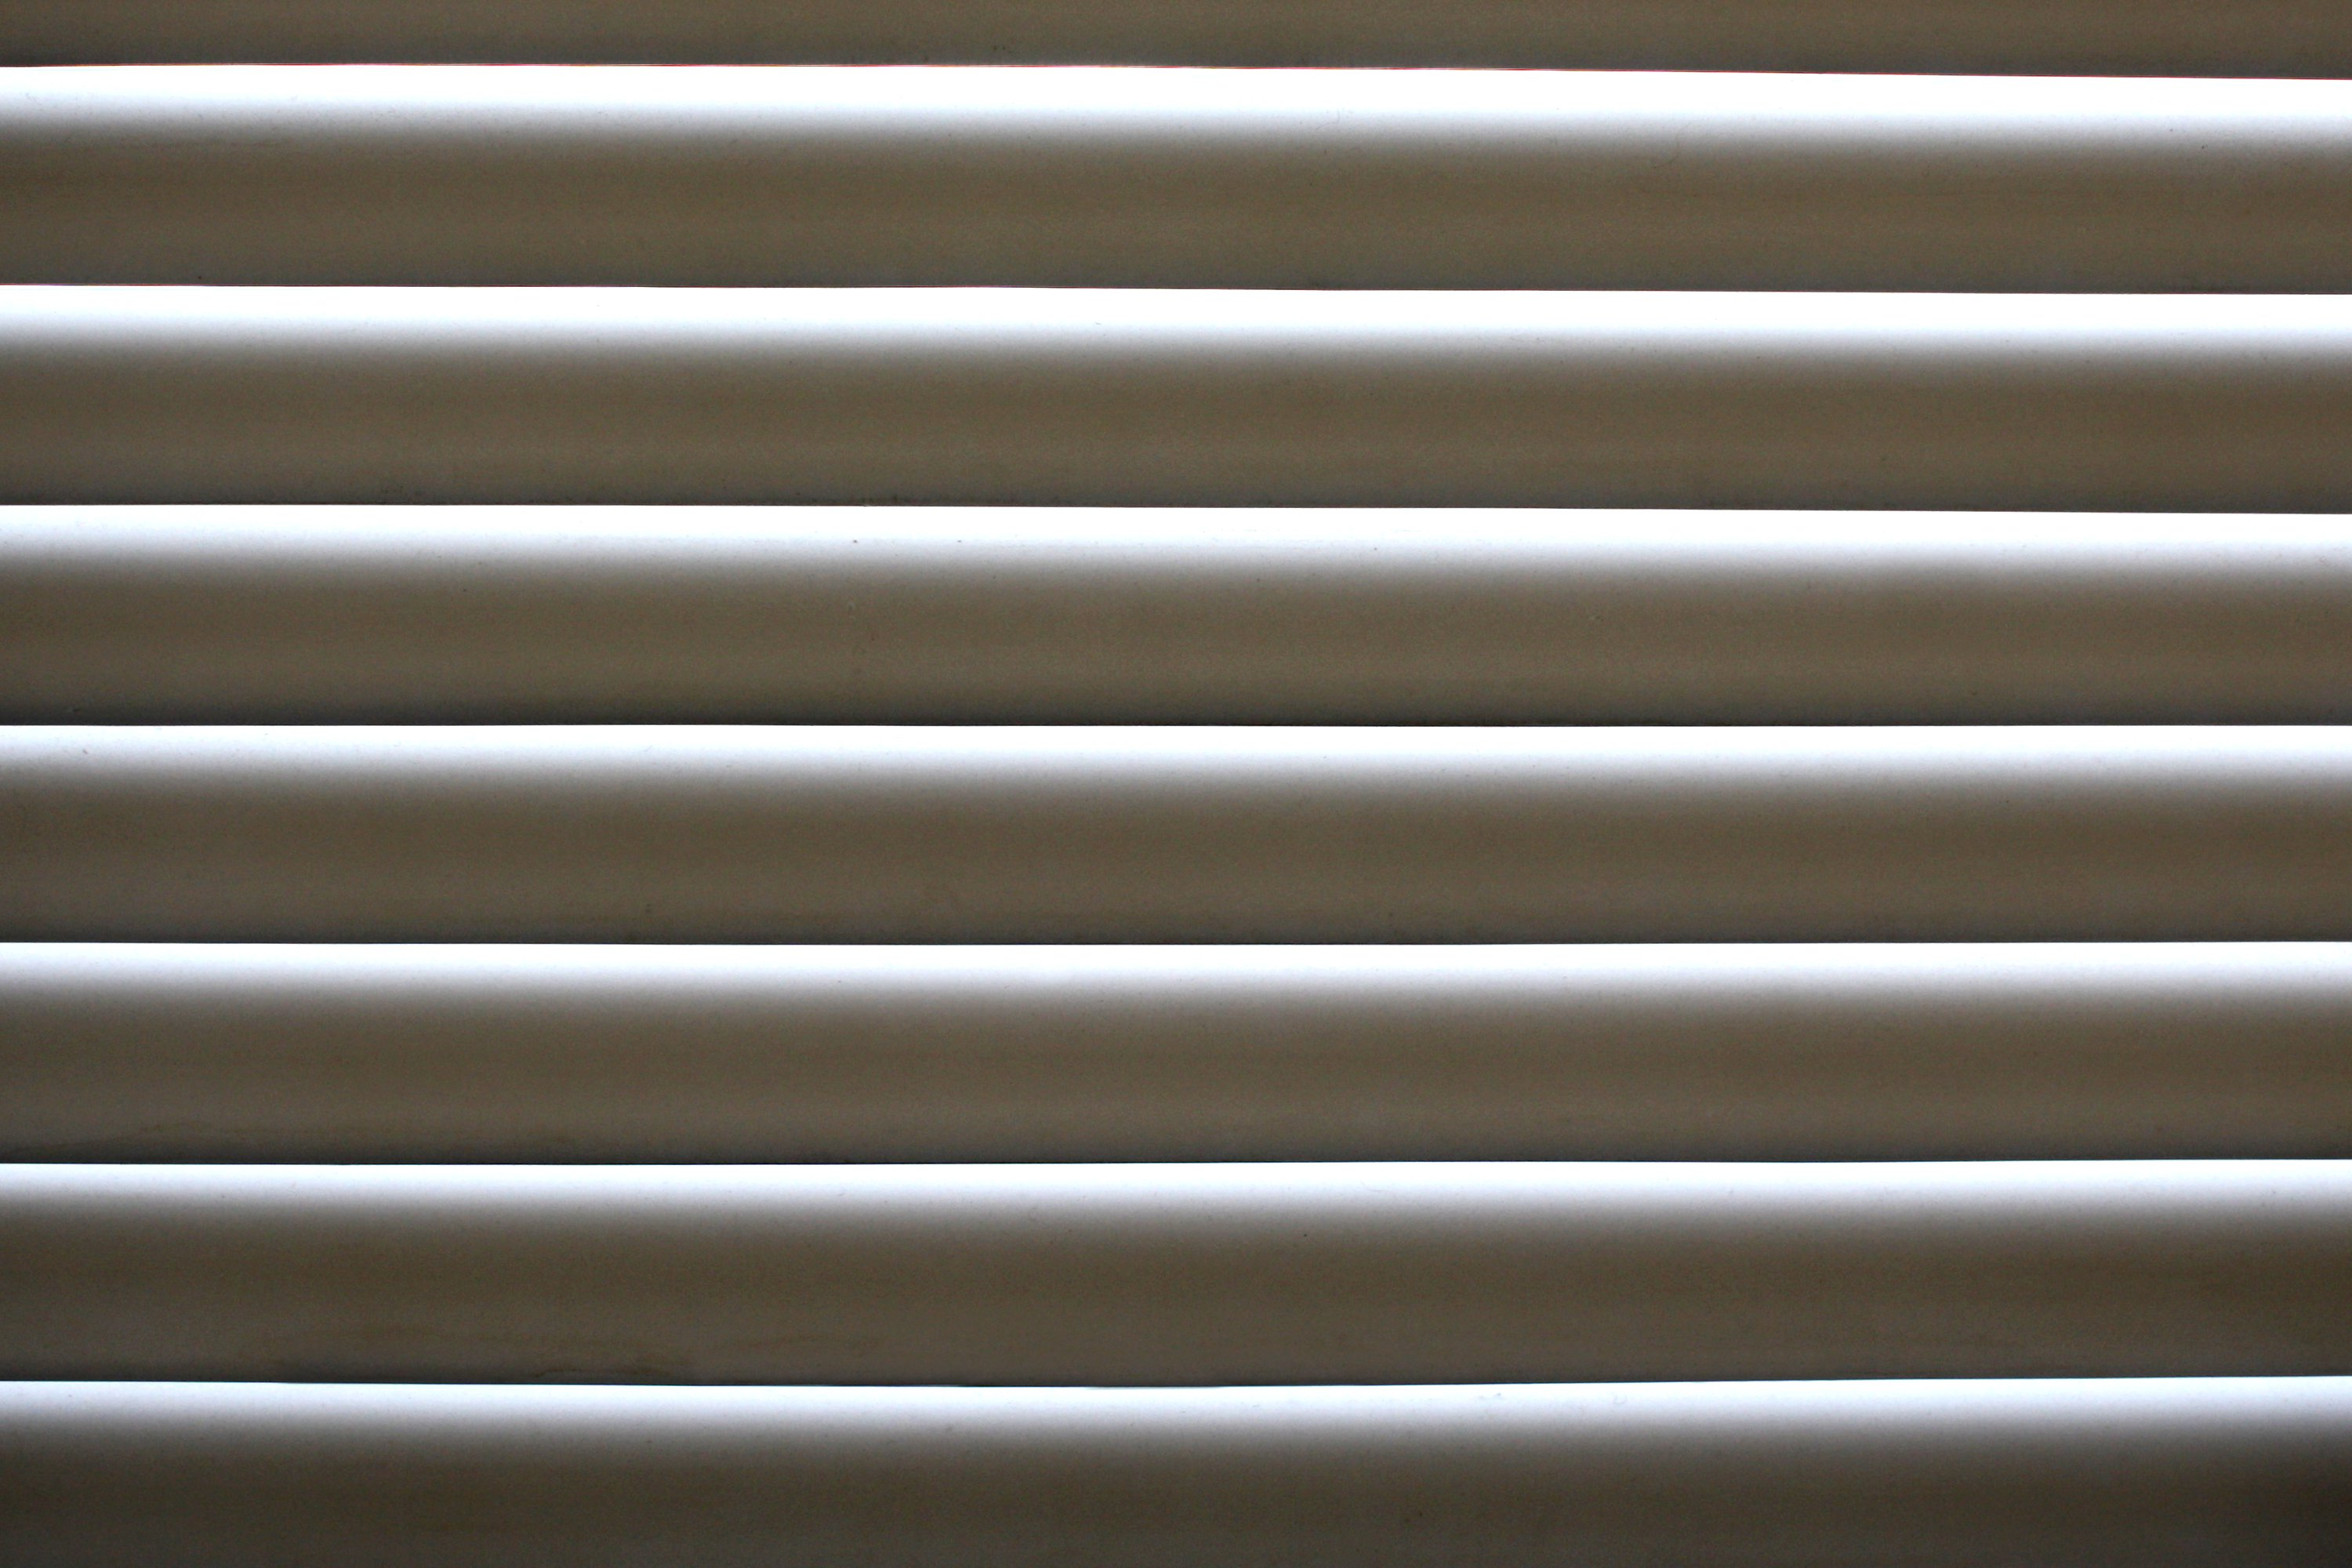 Window Mini Blind Closeup Texture Picture Free